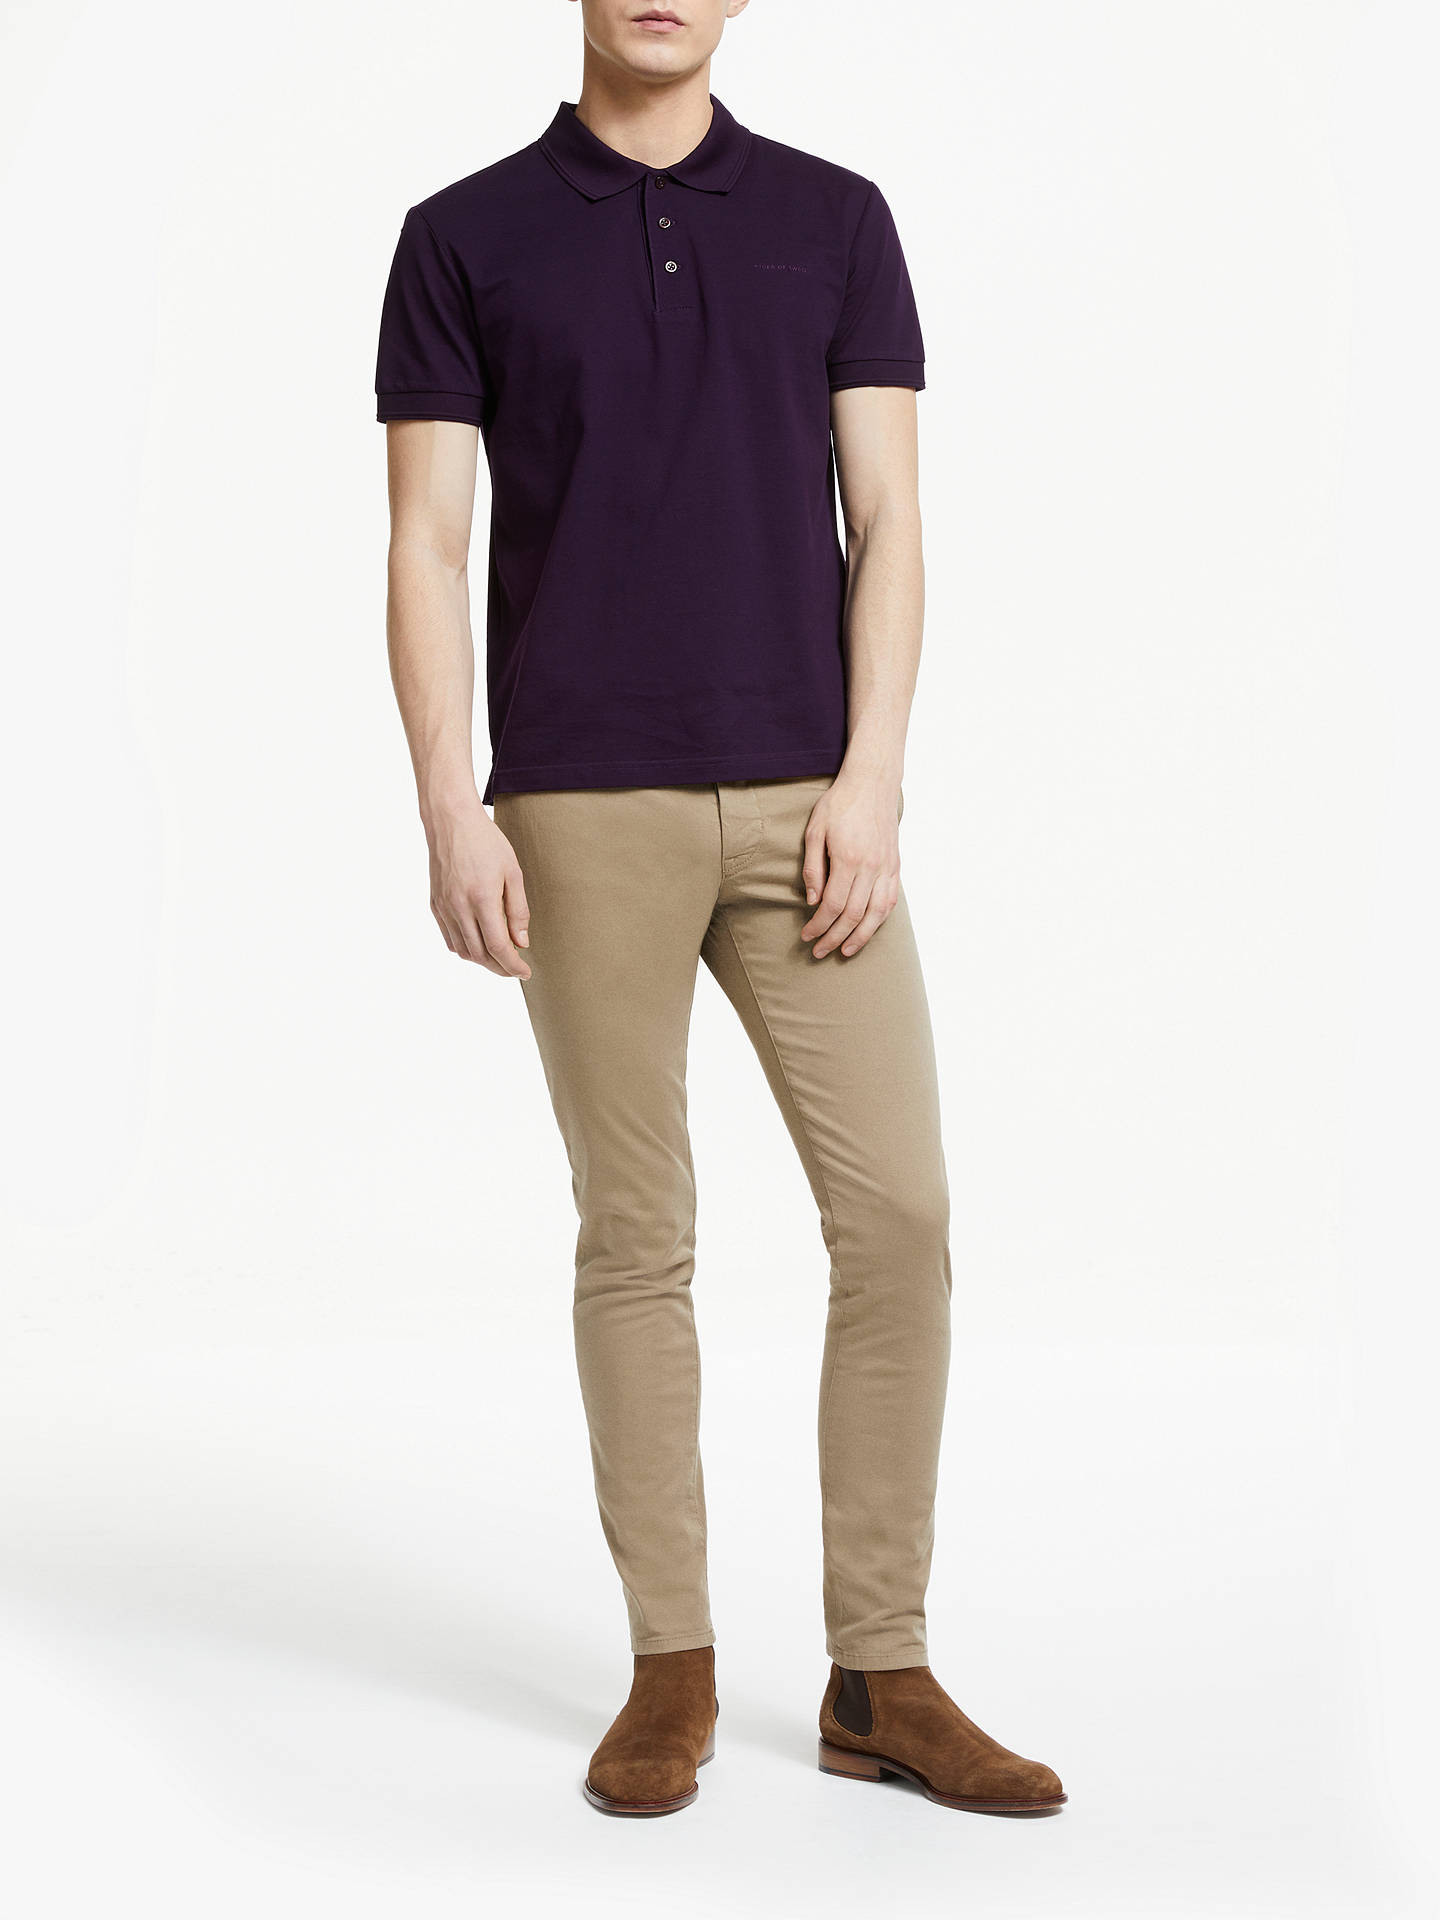 2c2af65e98f0 Buy Tiger of Sweden Transit Stretch Cotton Twill Slim Chinos, Beige, 32R  Online at ...